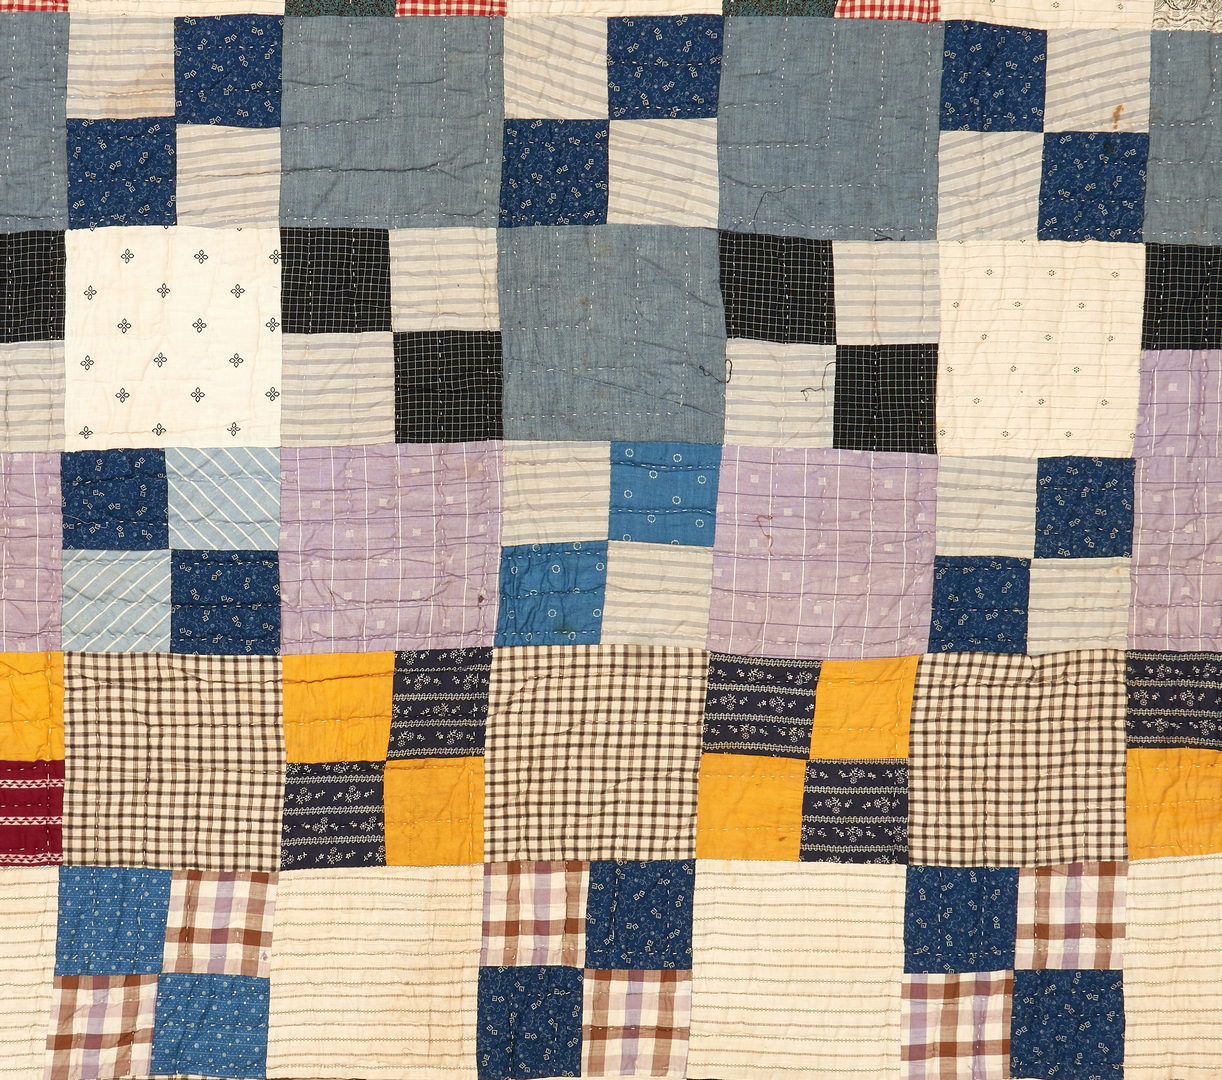 Lot 866: 3 Mississippi Pieced & Appliqued Quilts, signed